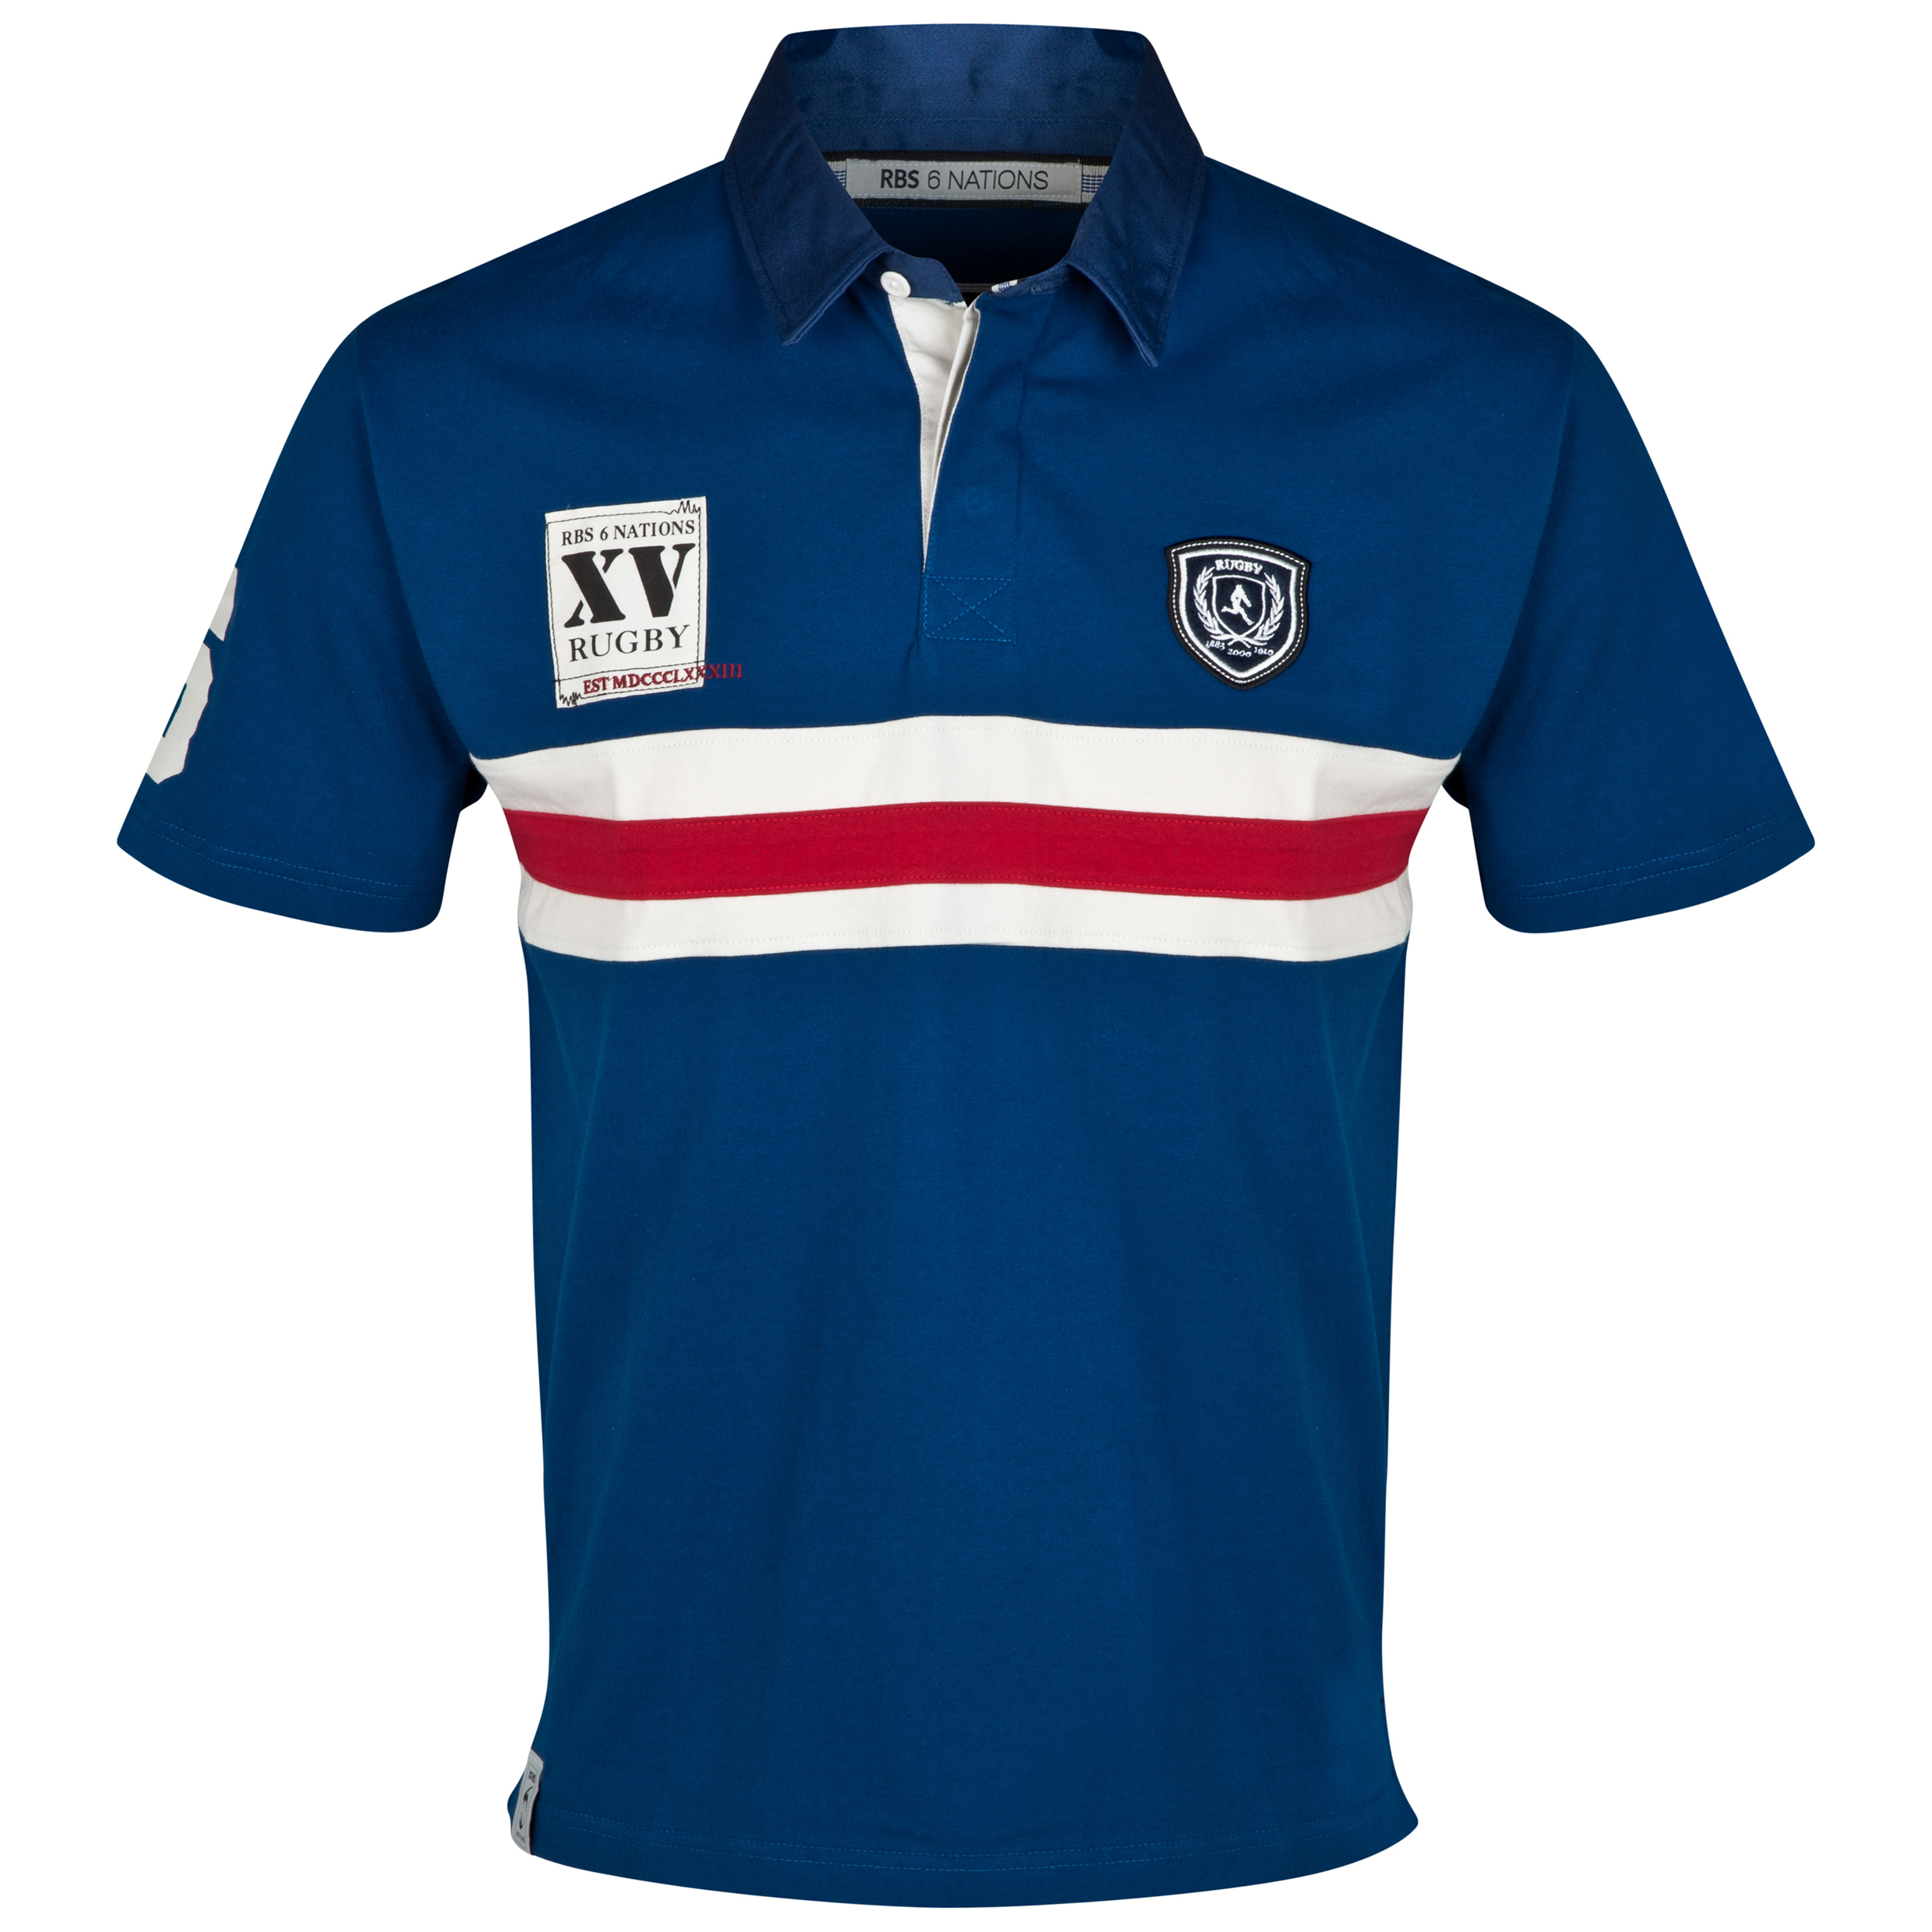 RBS Six Nations Heritage Short Sleeved Rugby Shirt - Mens - Blue